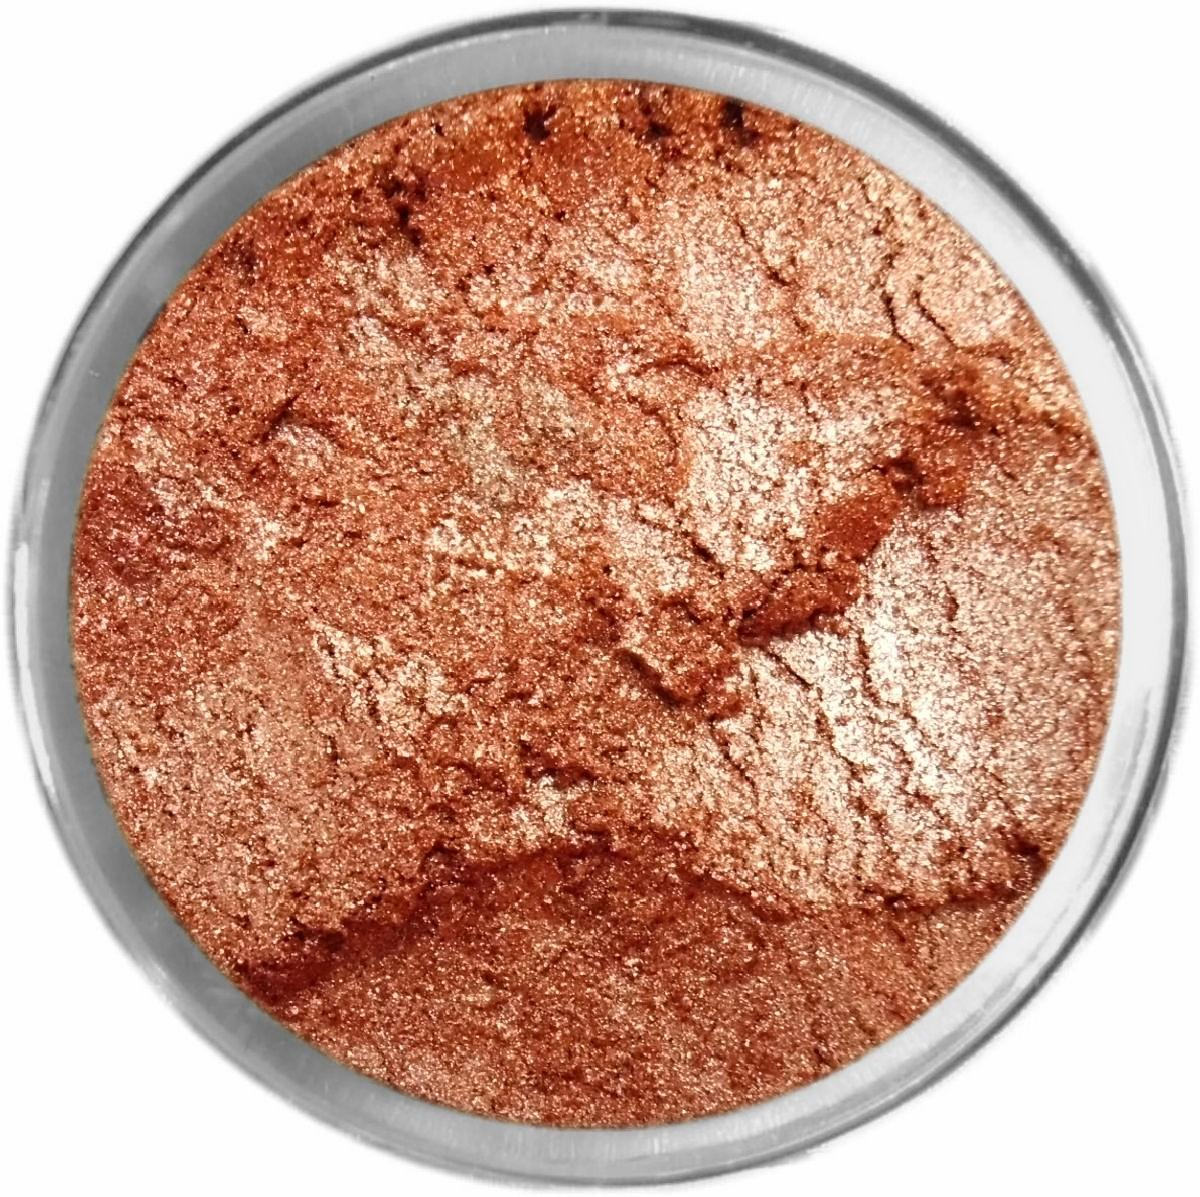 ANTIQUE loose powder mineral multi-use color makeup bare earth pigment minerals